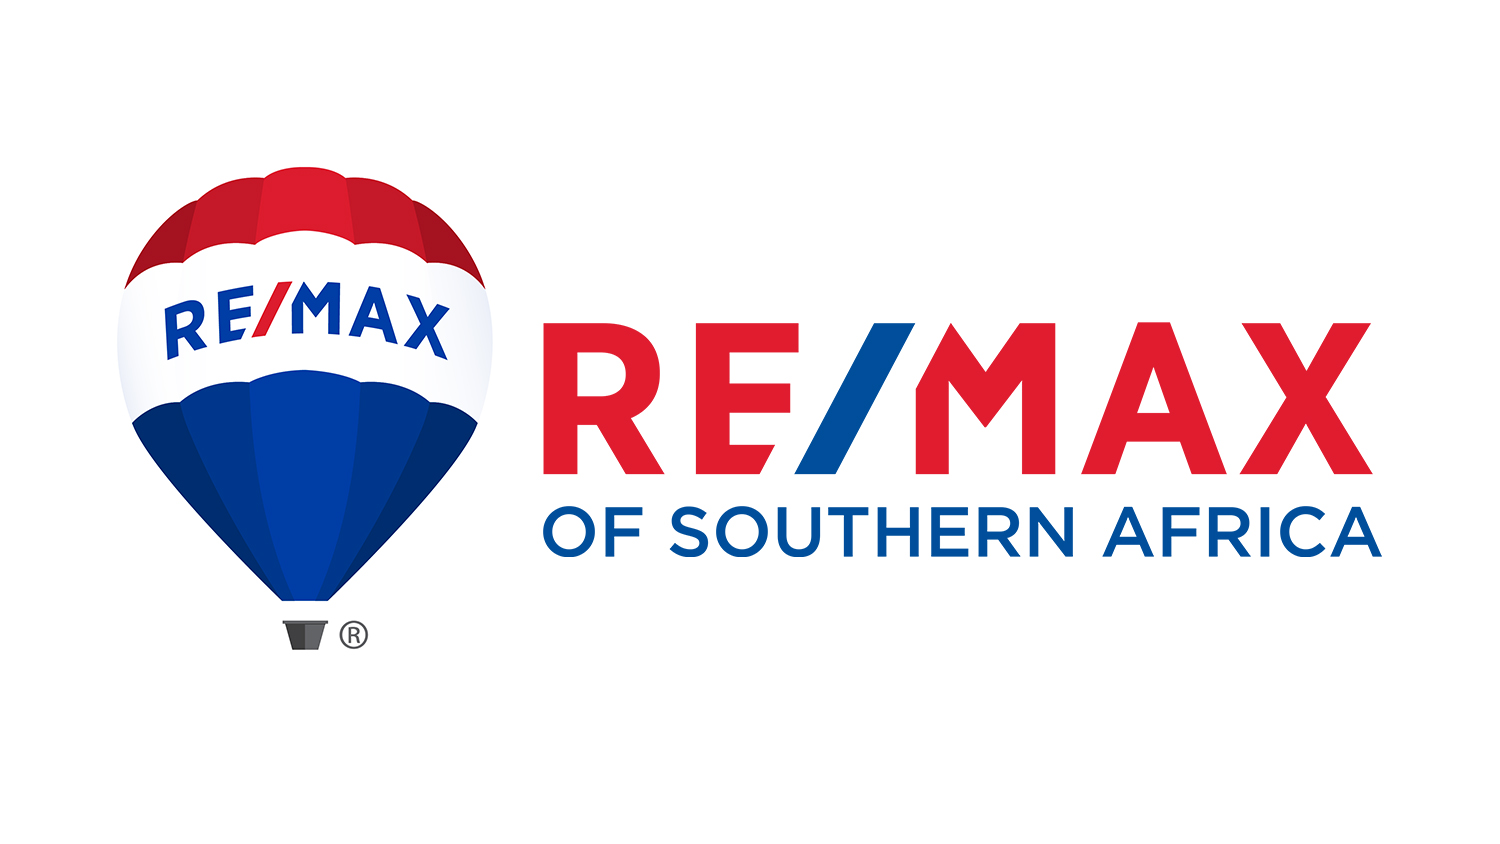 EXPLAINING THE RE/MAX BUSINESS MODEL